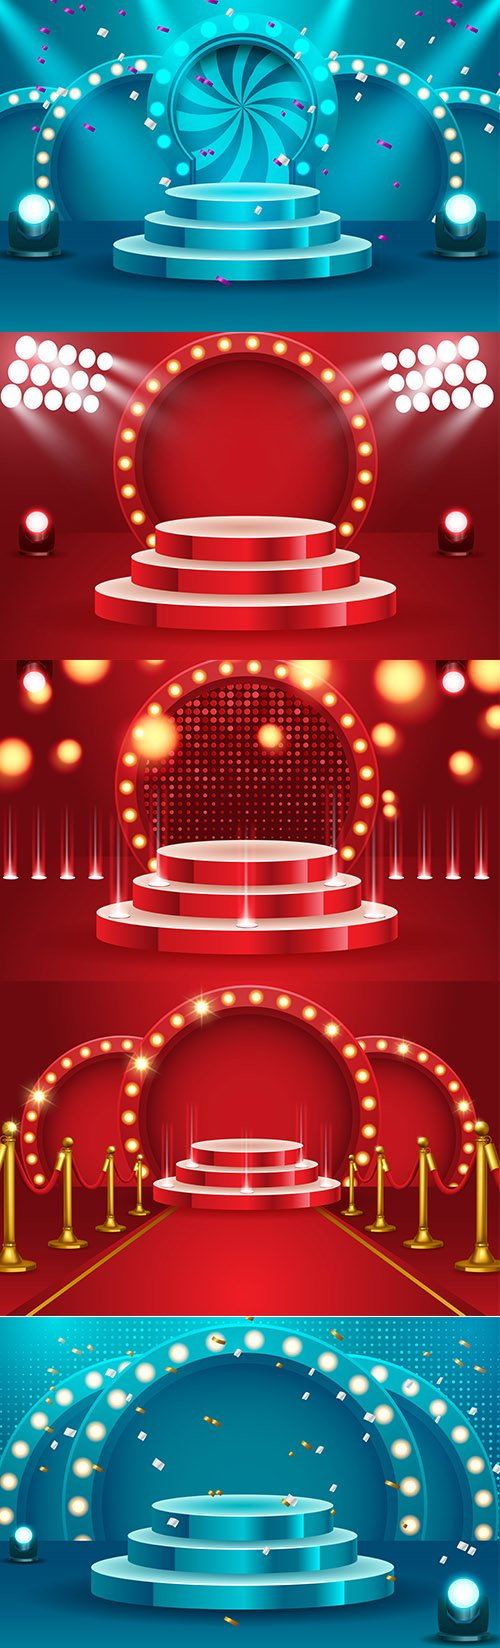 Abstract Round Podium Backgrounds